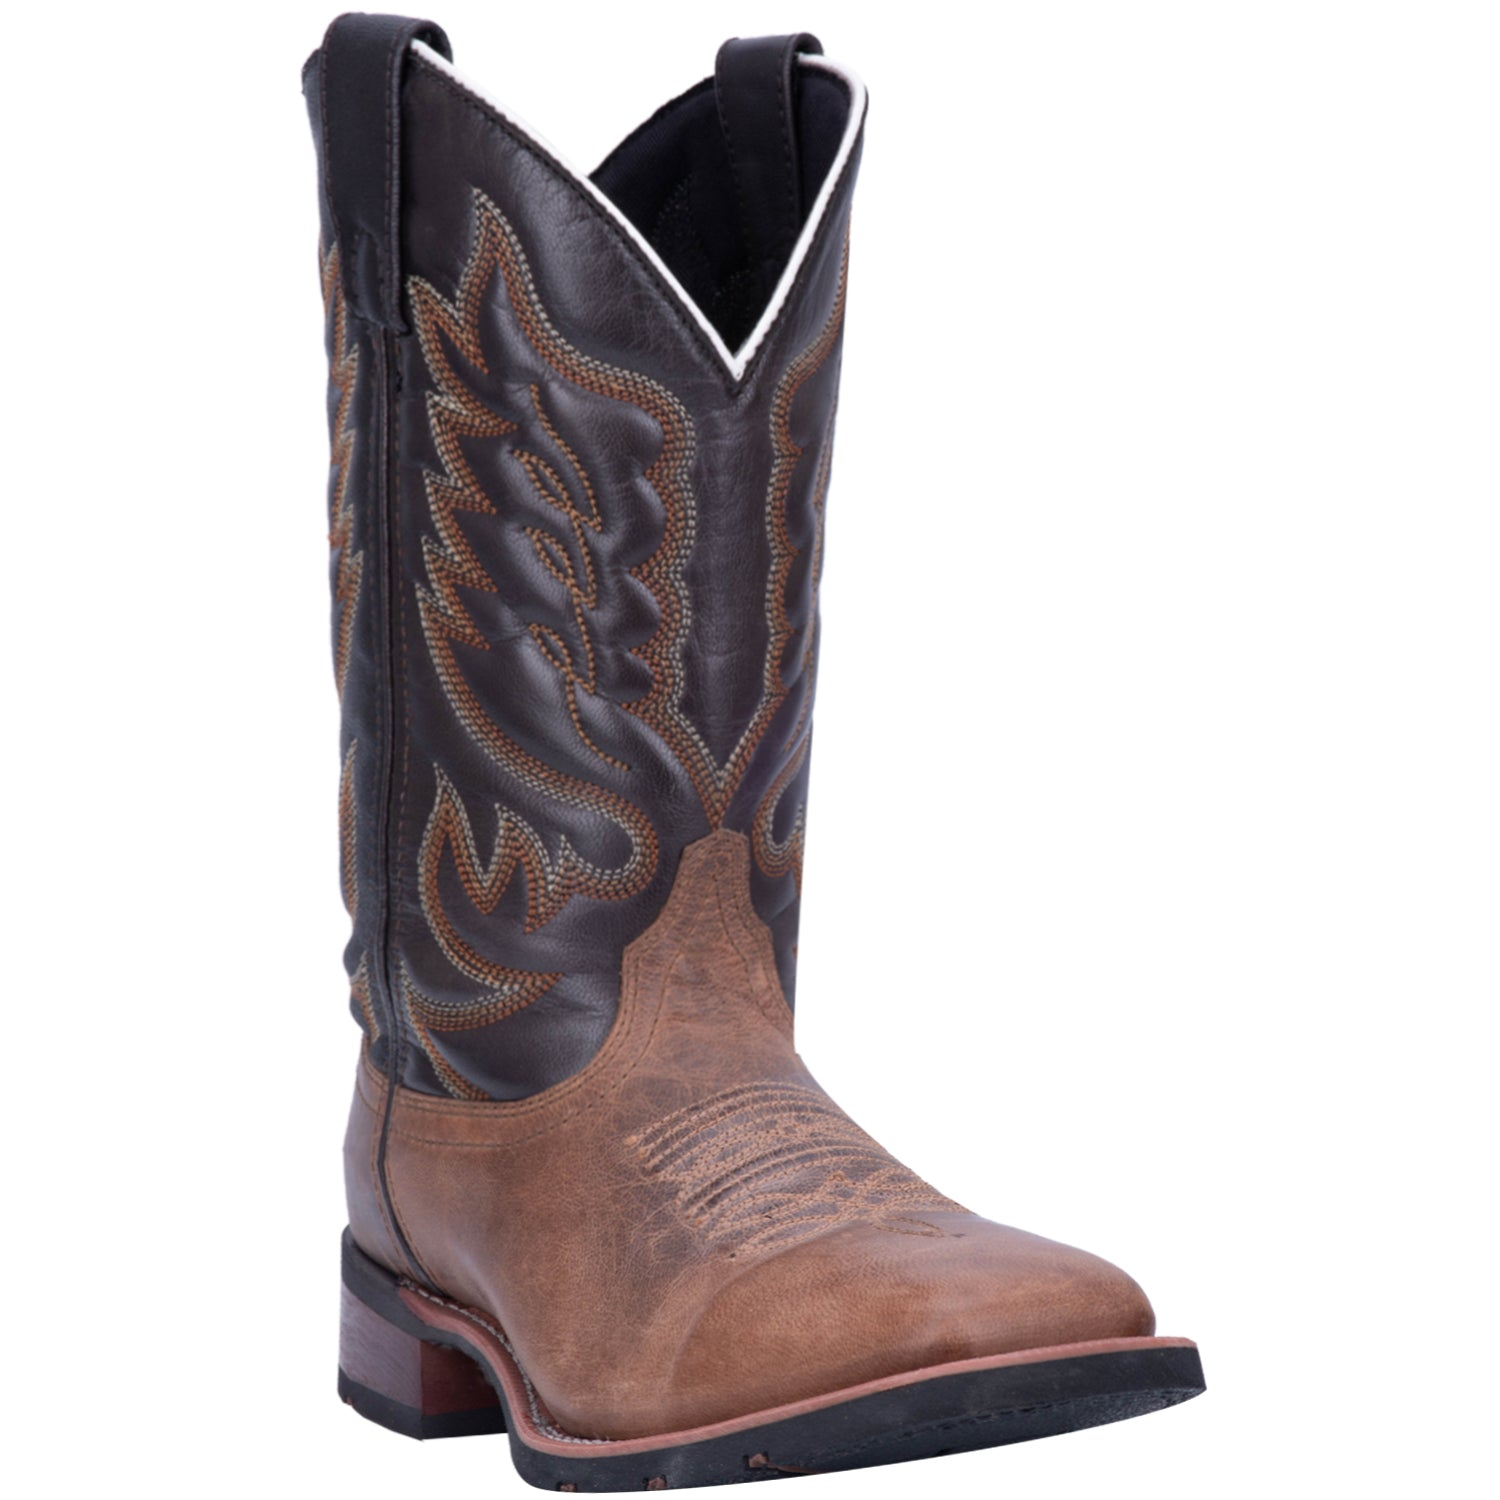 MONTANA LEATHER BOOT 4495175450666